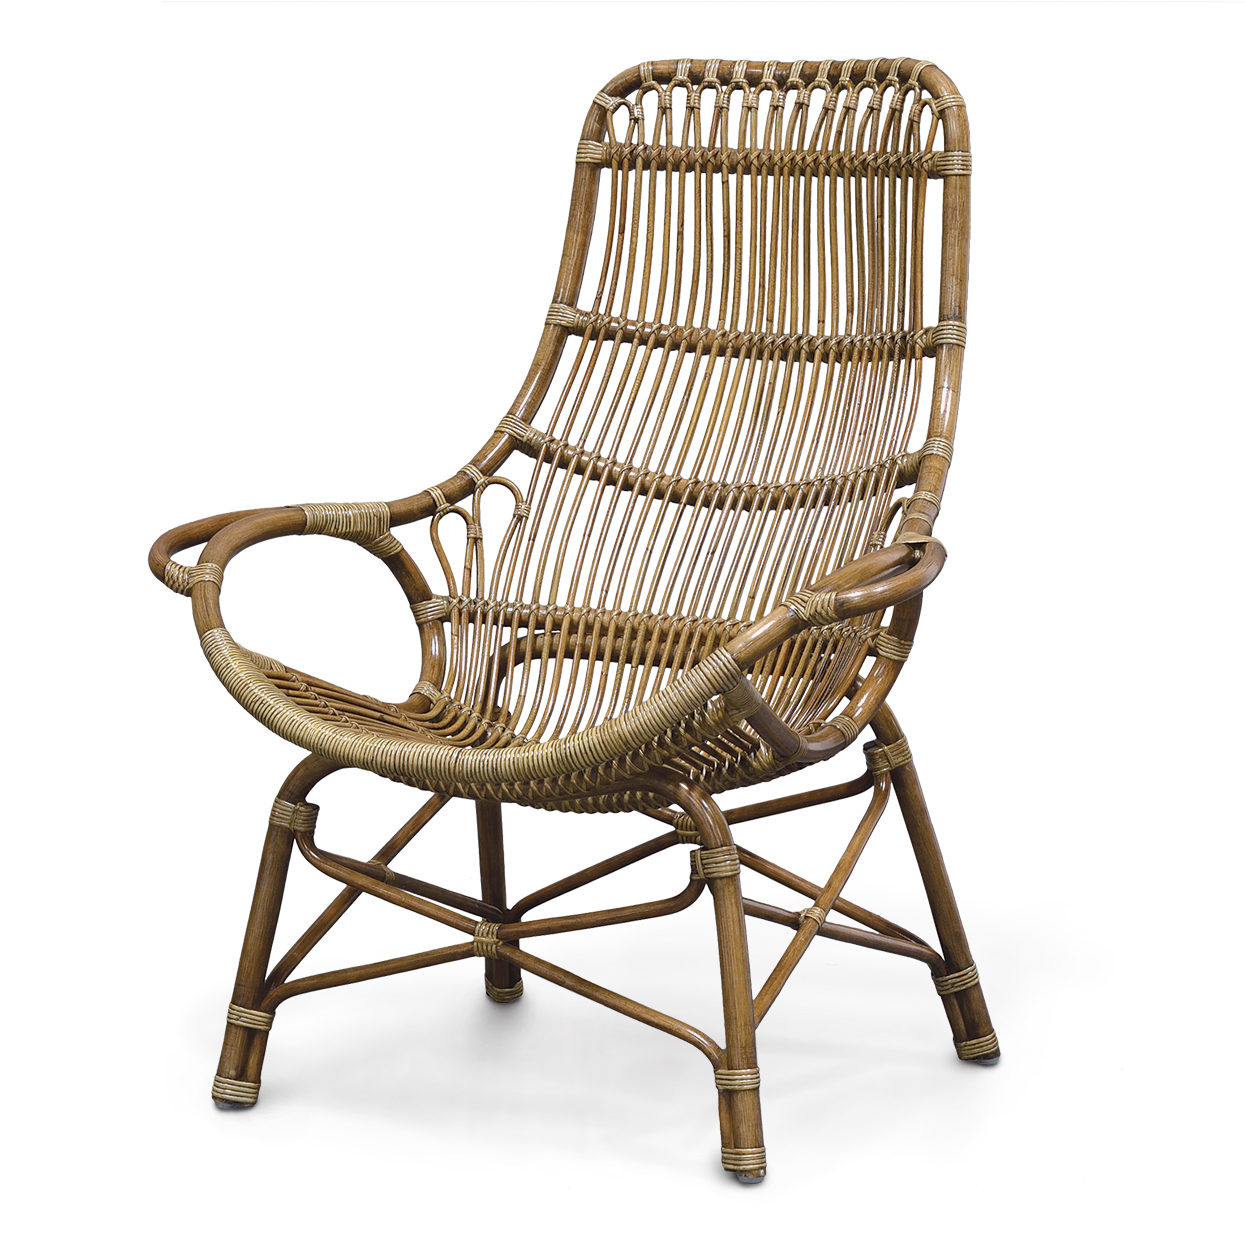 Description. RETRO RATTAN HIGH BACK LOUNGE CHAIR